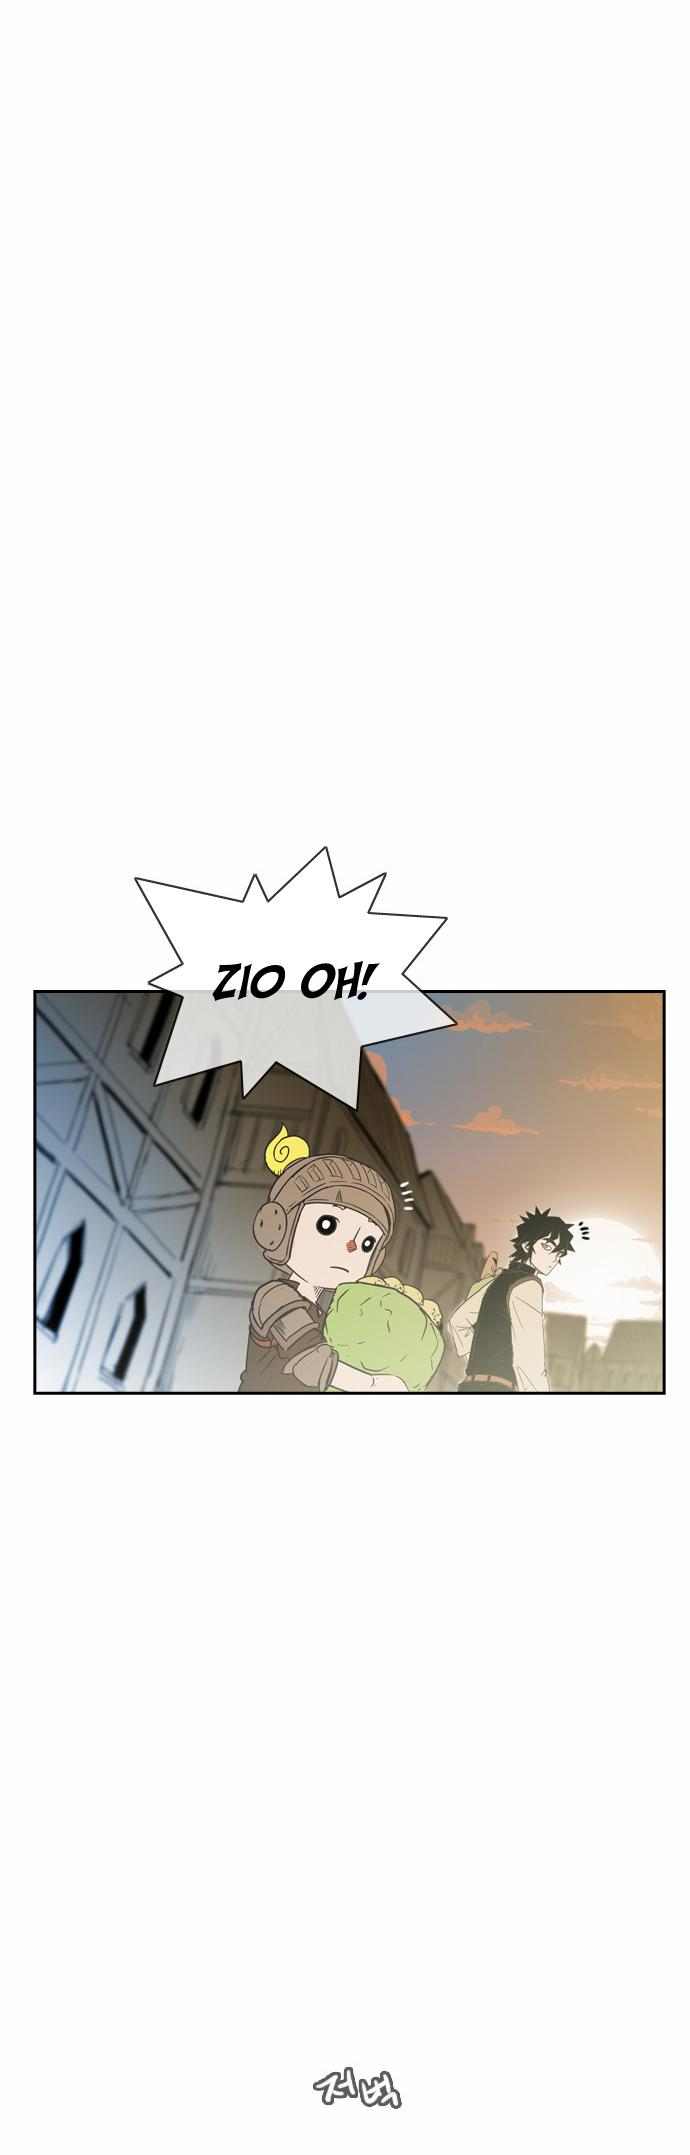 Magic scroll merchant Zio - Chapter 8